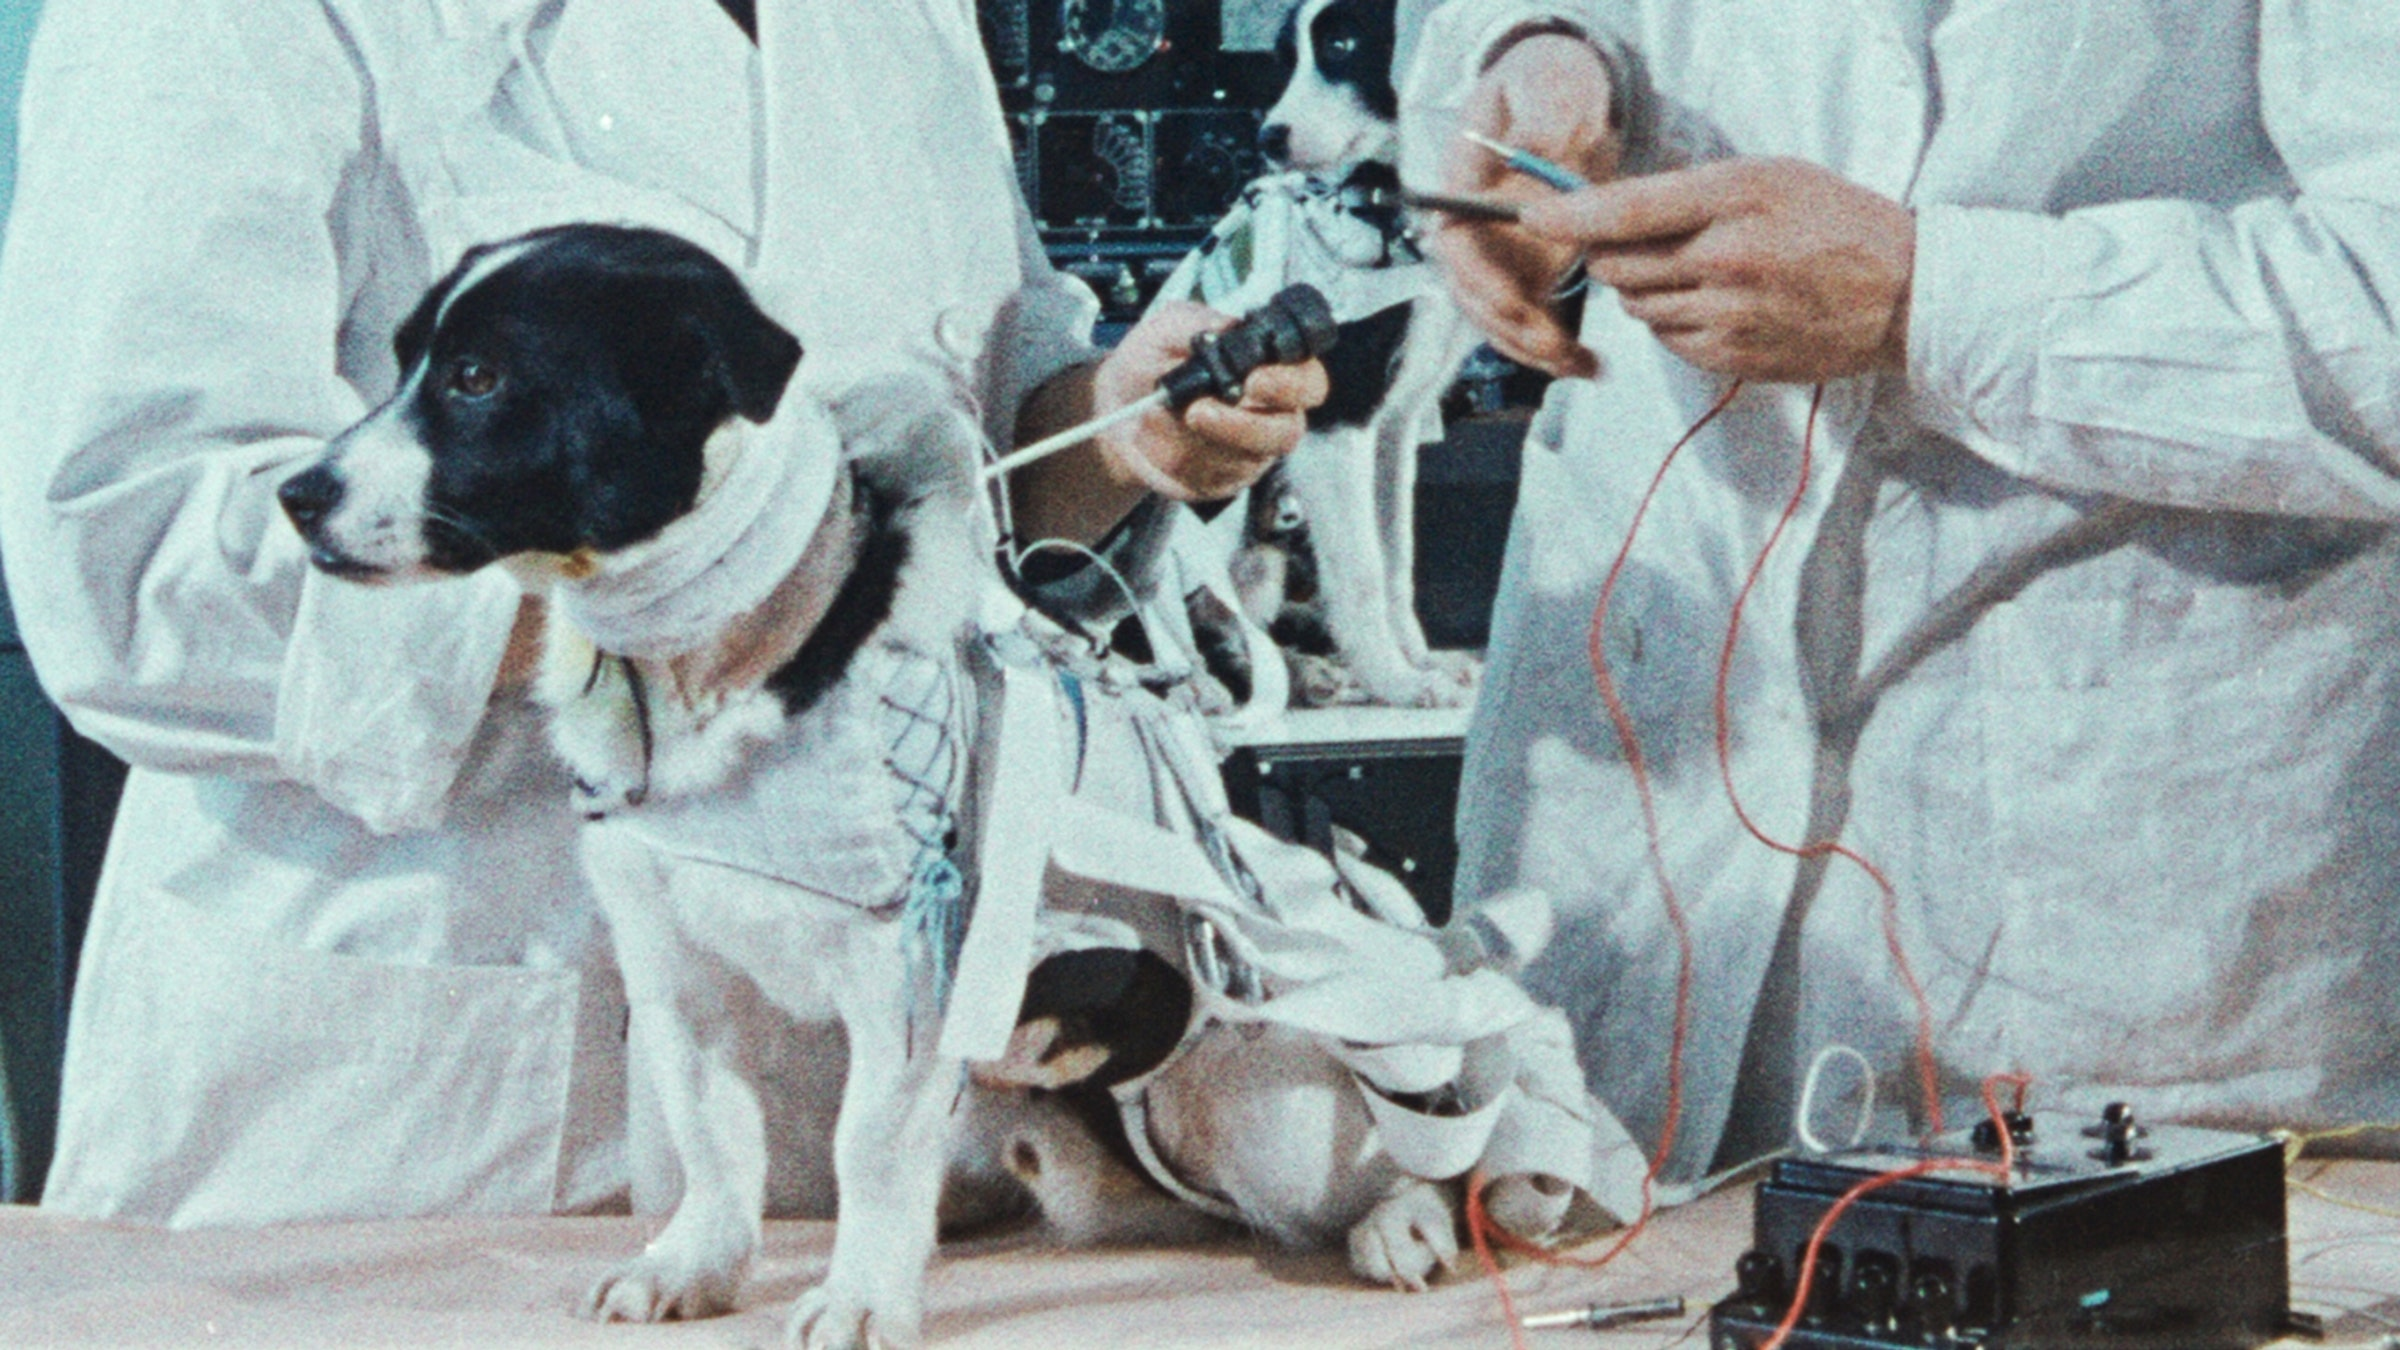 Space dogs in a laboratory setting.